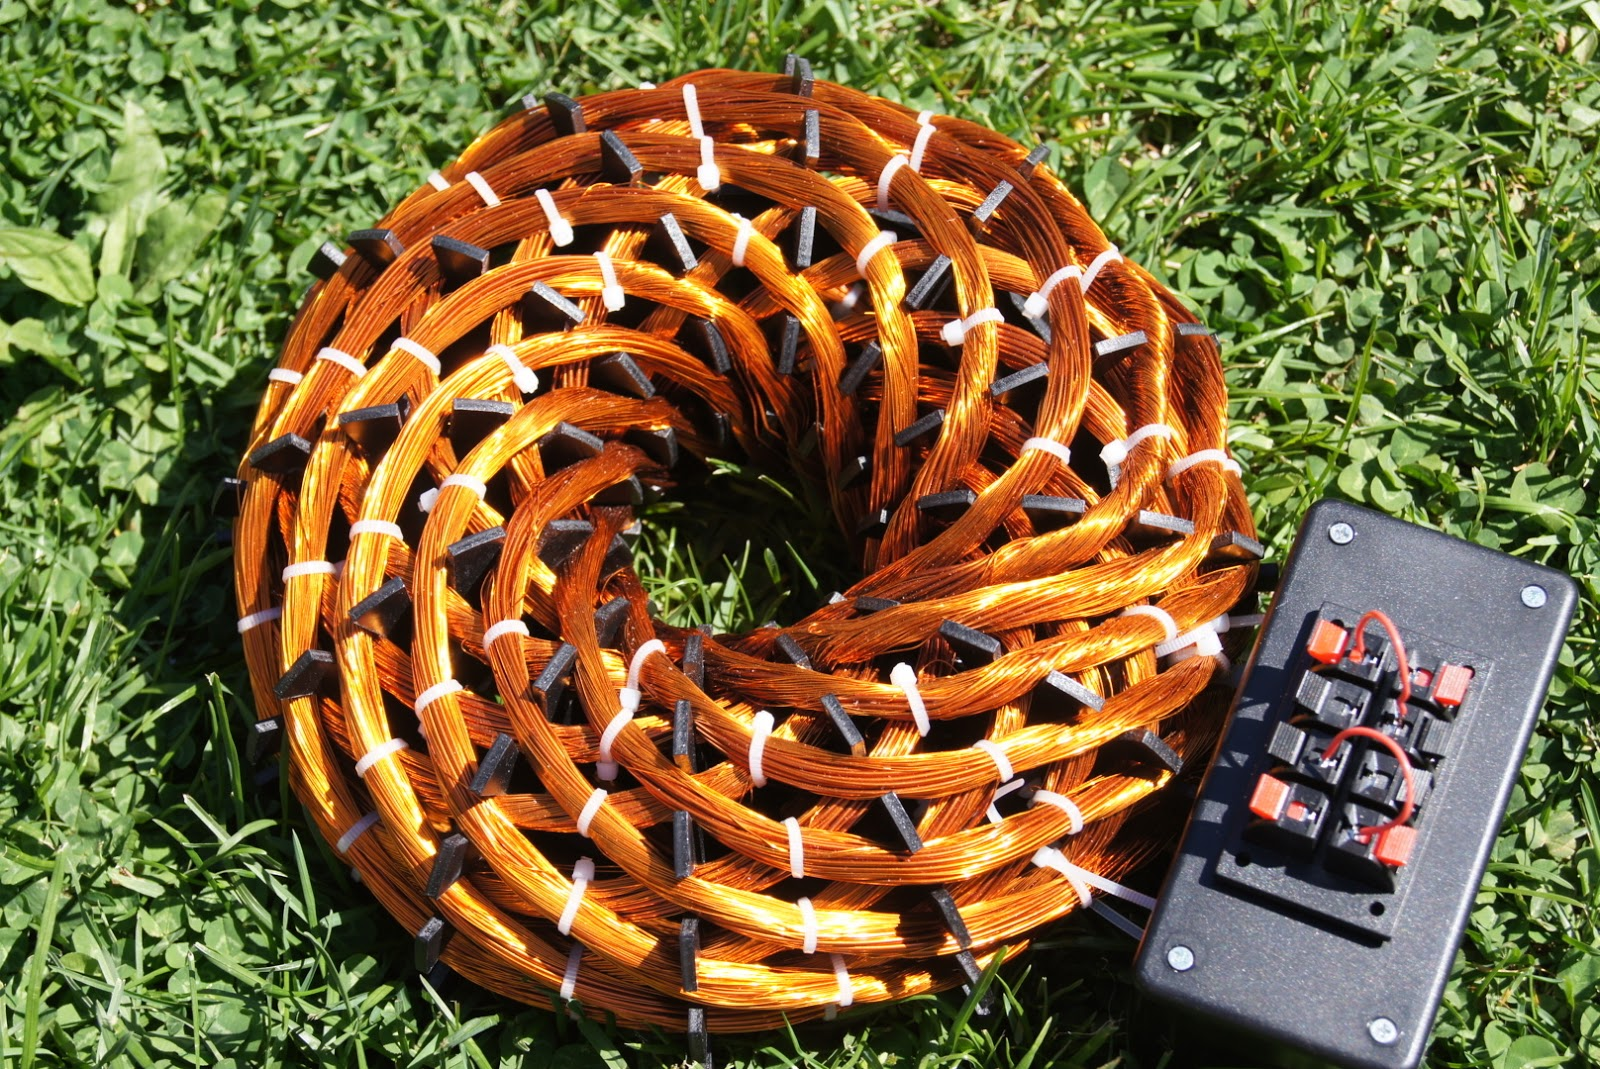 Introducing the 1:7.66 POE Vortex Coil! | 1Stop Energies